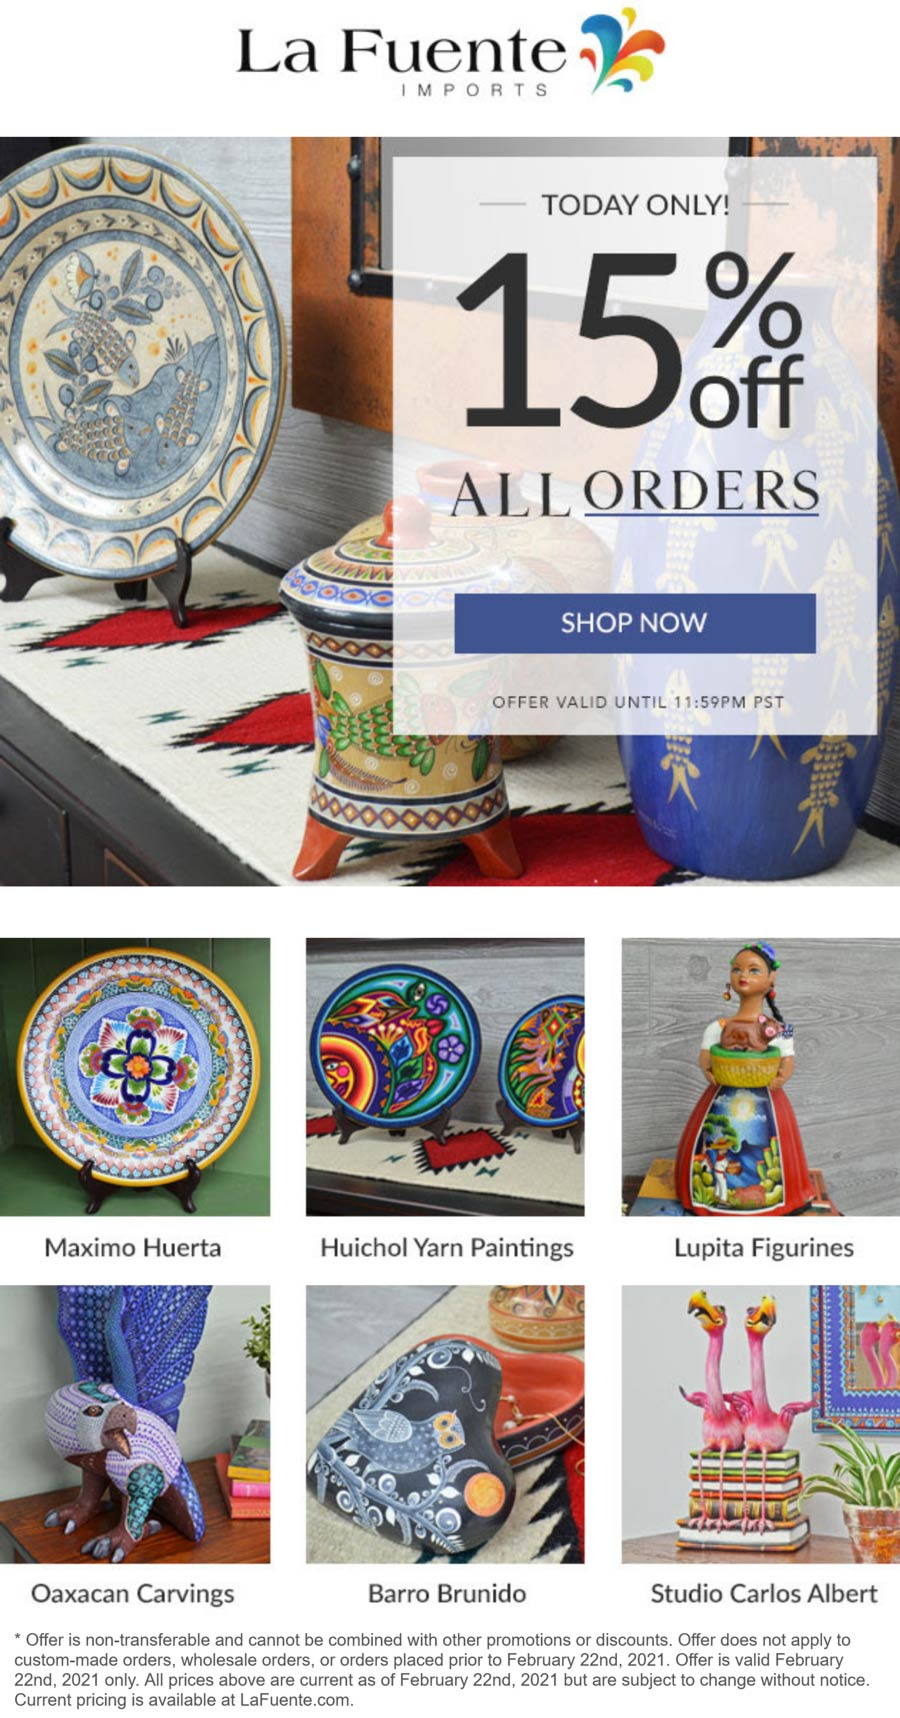 La Fuente Imports coupons & promo code for [March 2021]